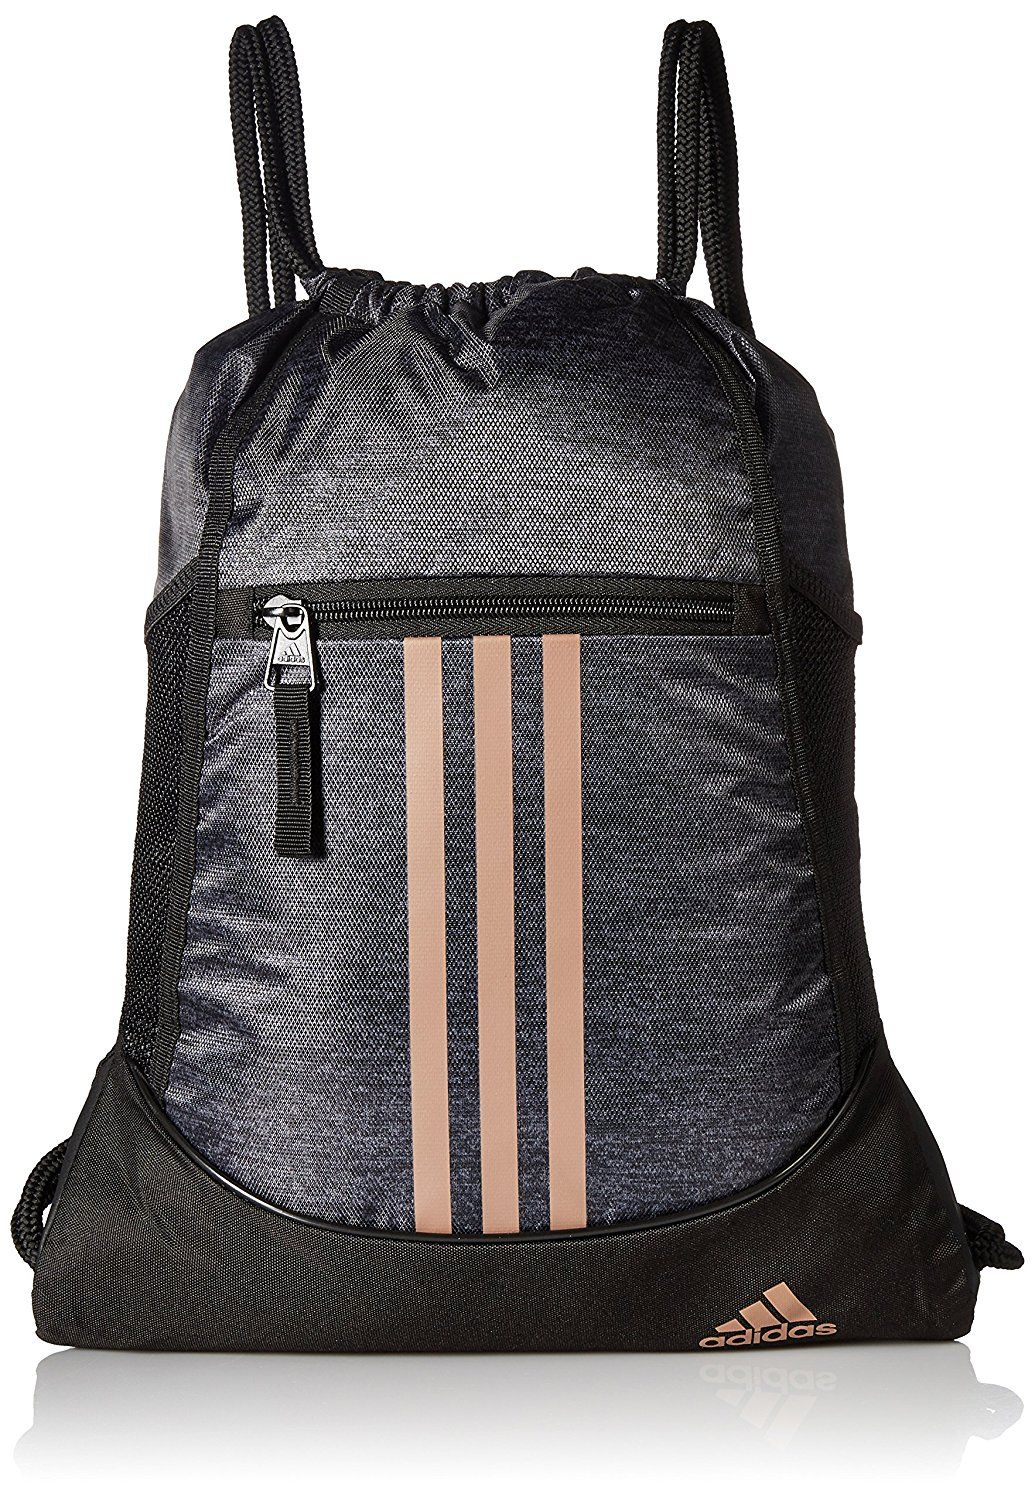 9016d266a7 Details about adidas Alliance Sack Pack Drawstring Gym Bags Unisex ...